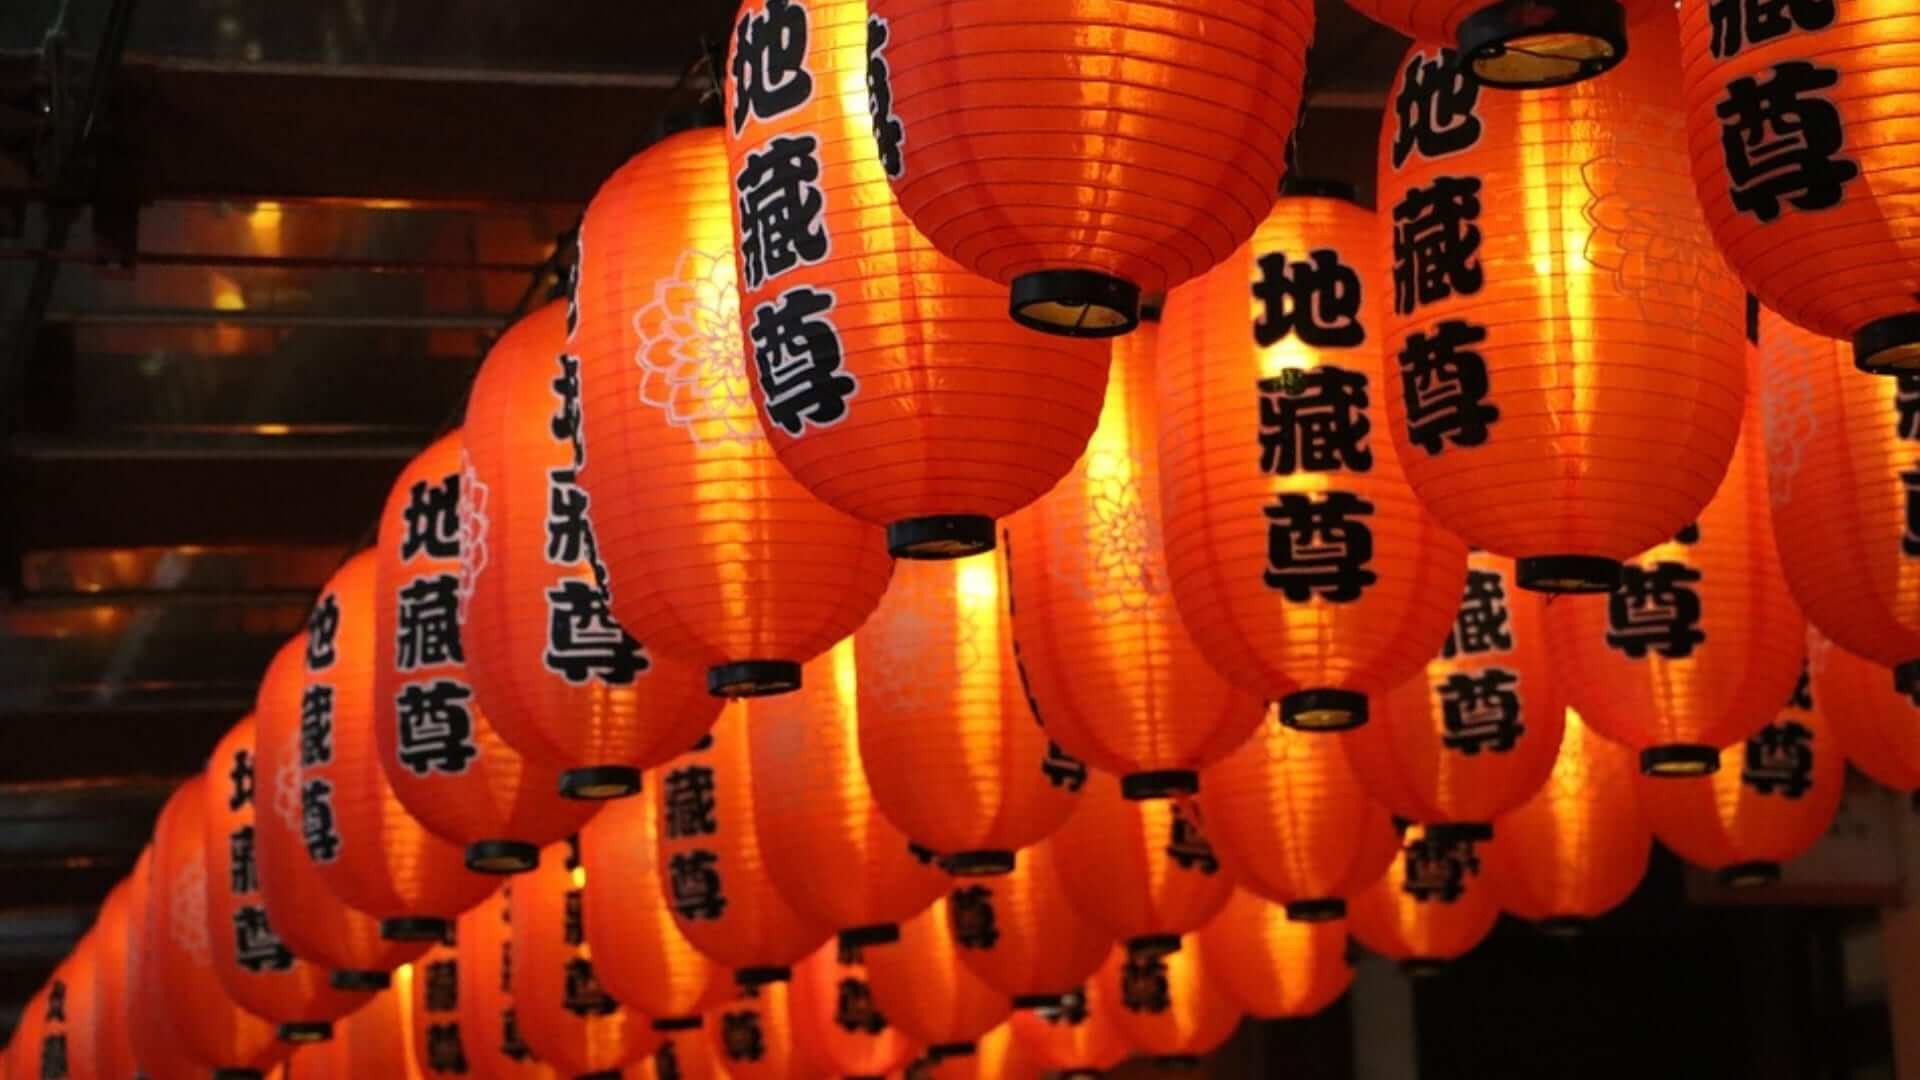 Many illuminated red lanterns with Chinese characters on them during a festival in China.